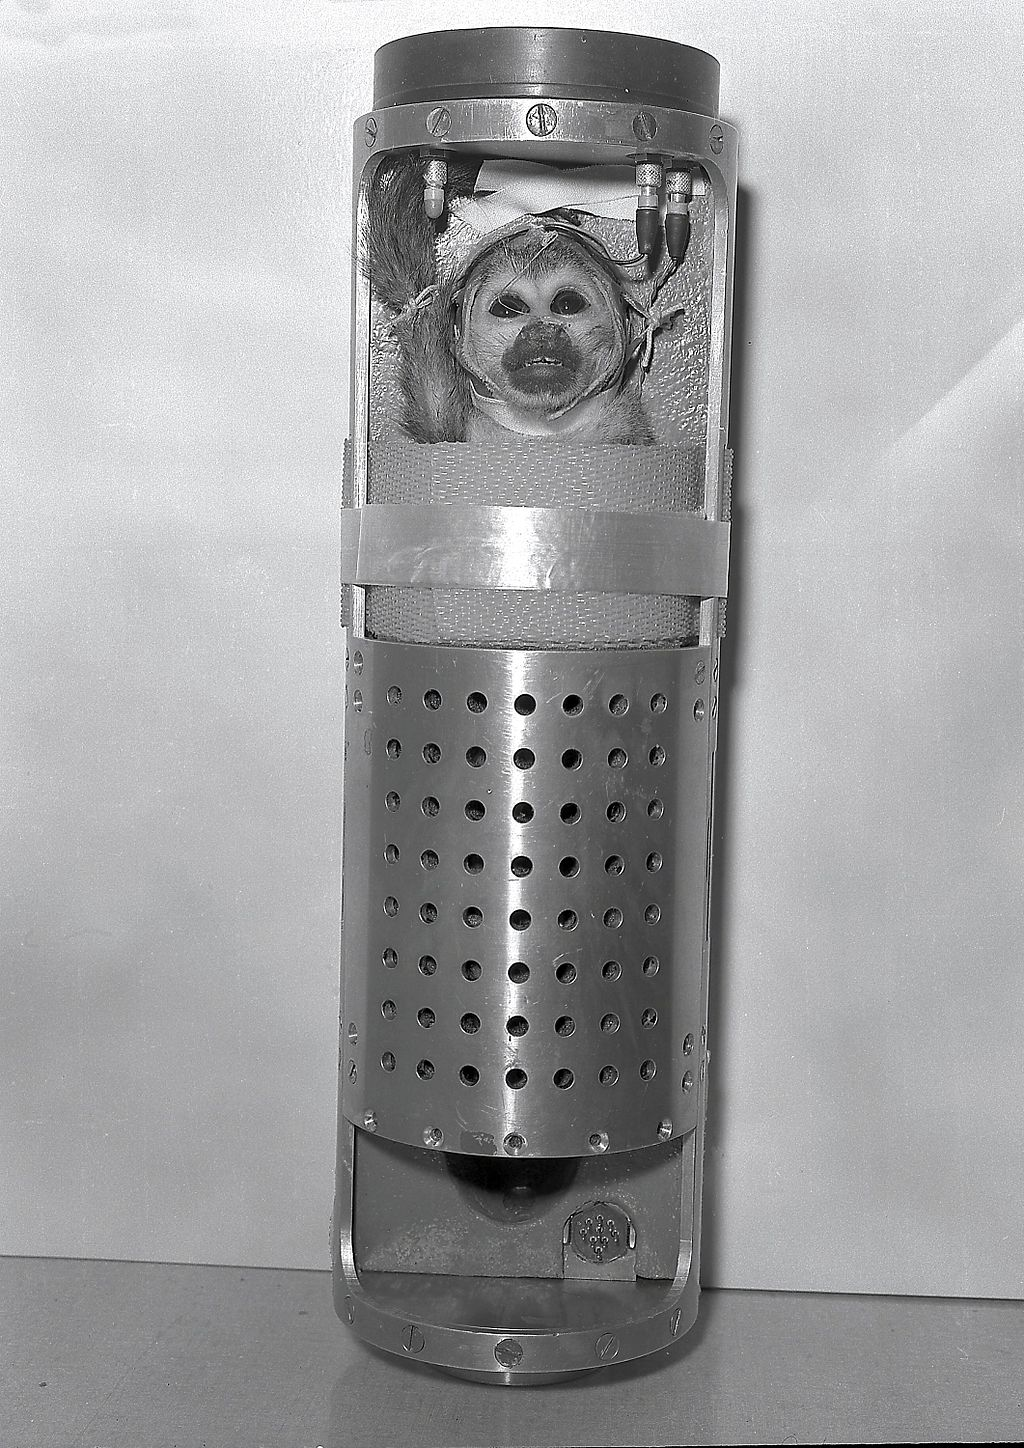 Baker the monkey was sent into space in the 1950s